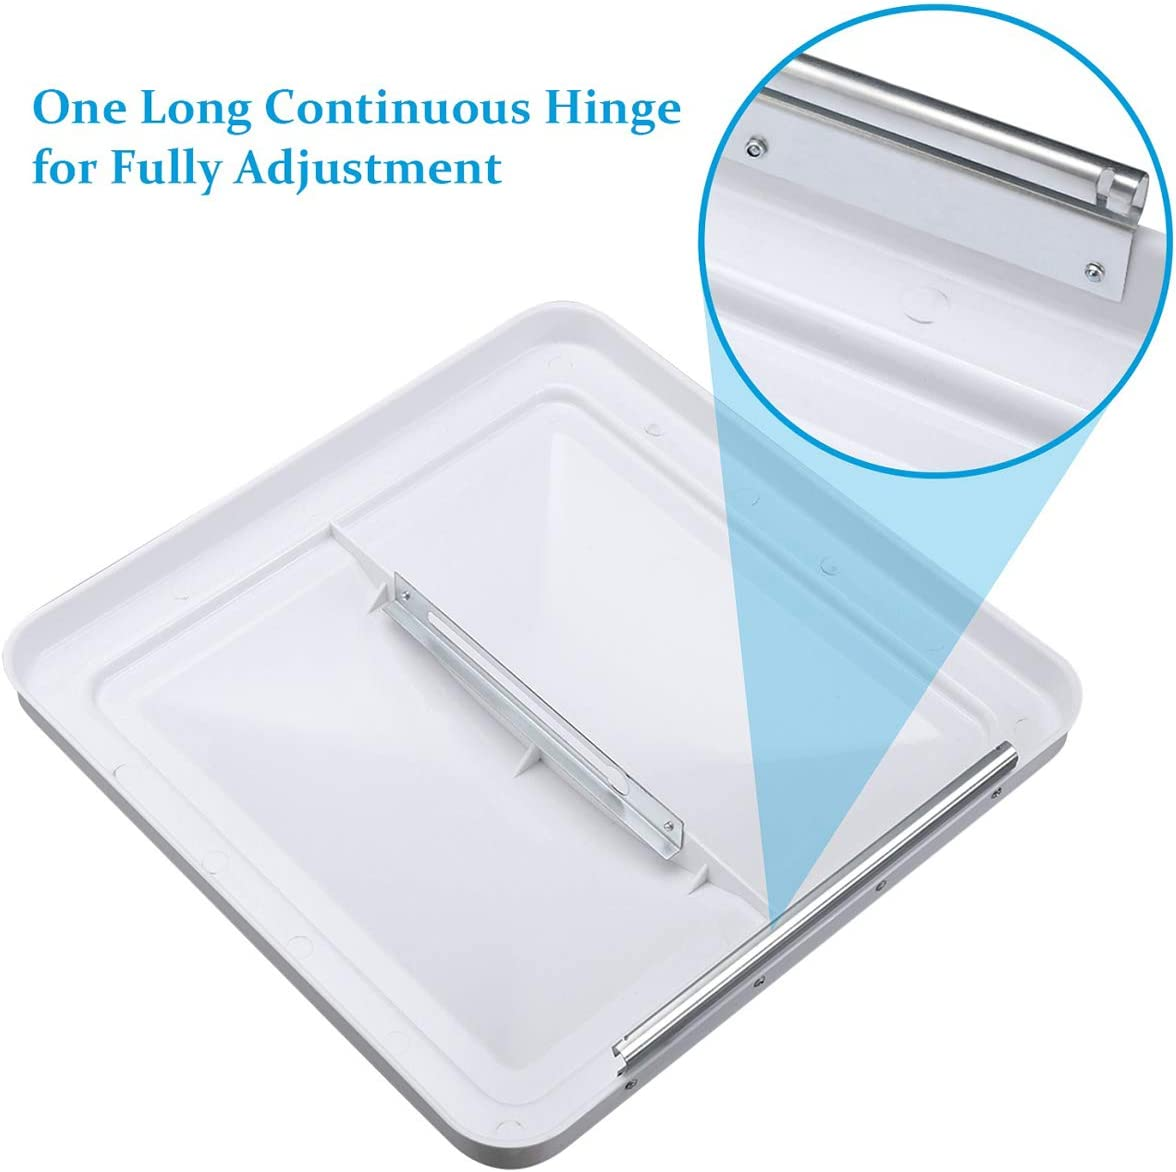 VETOMILE RV Roof Vent Lid Cover Universal Replacement 14 Inch White for Camper Trailer (1 Pack): Home Improvement